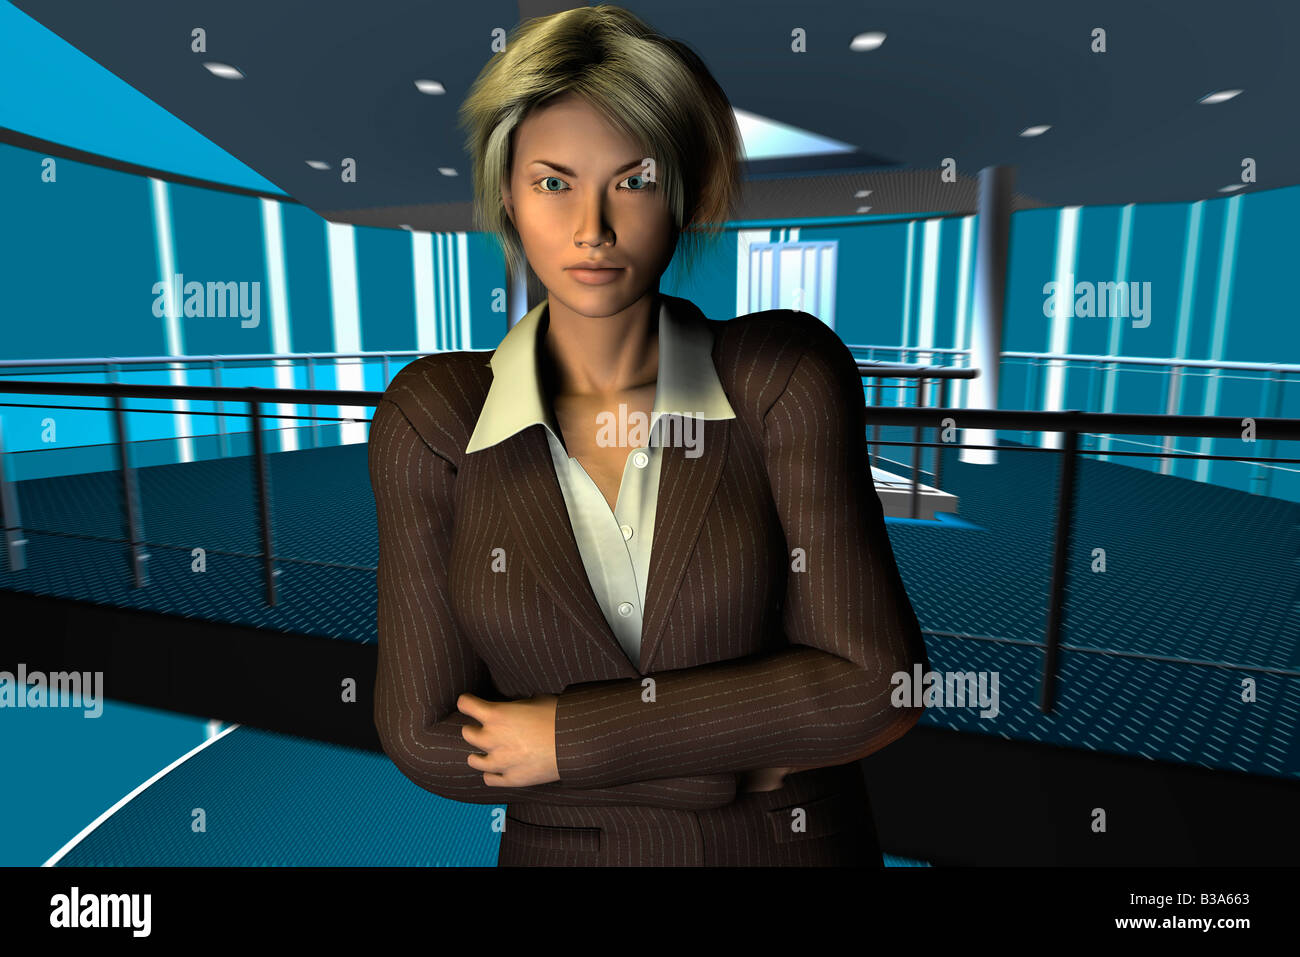 Computer Illustration Of A Businesswoman With Folding Arms Looking Into Camera - Stock Image